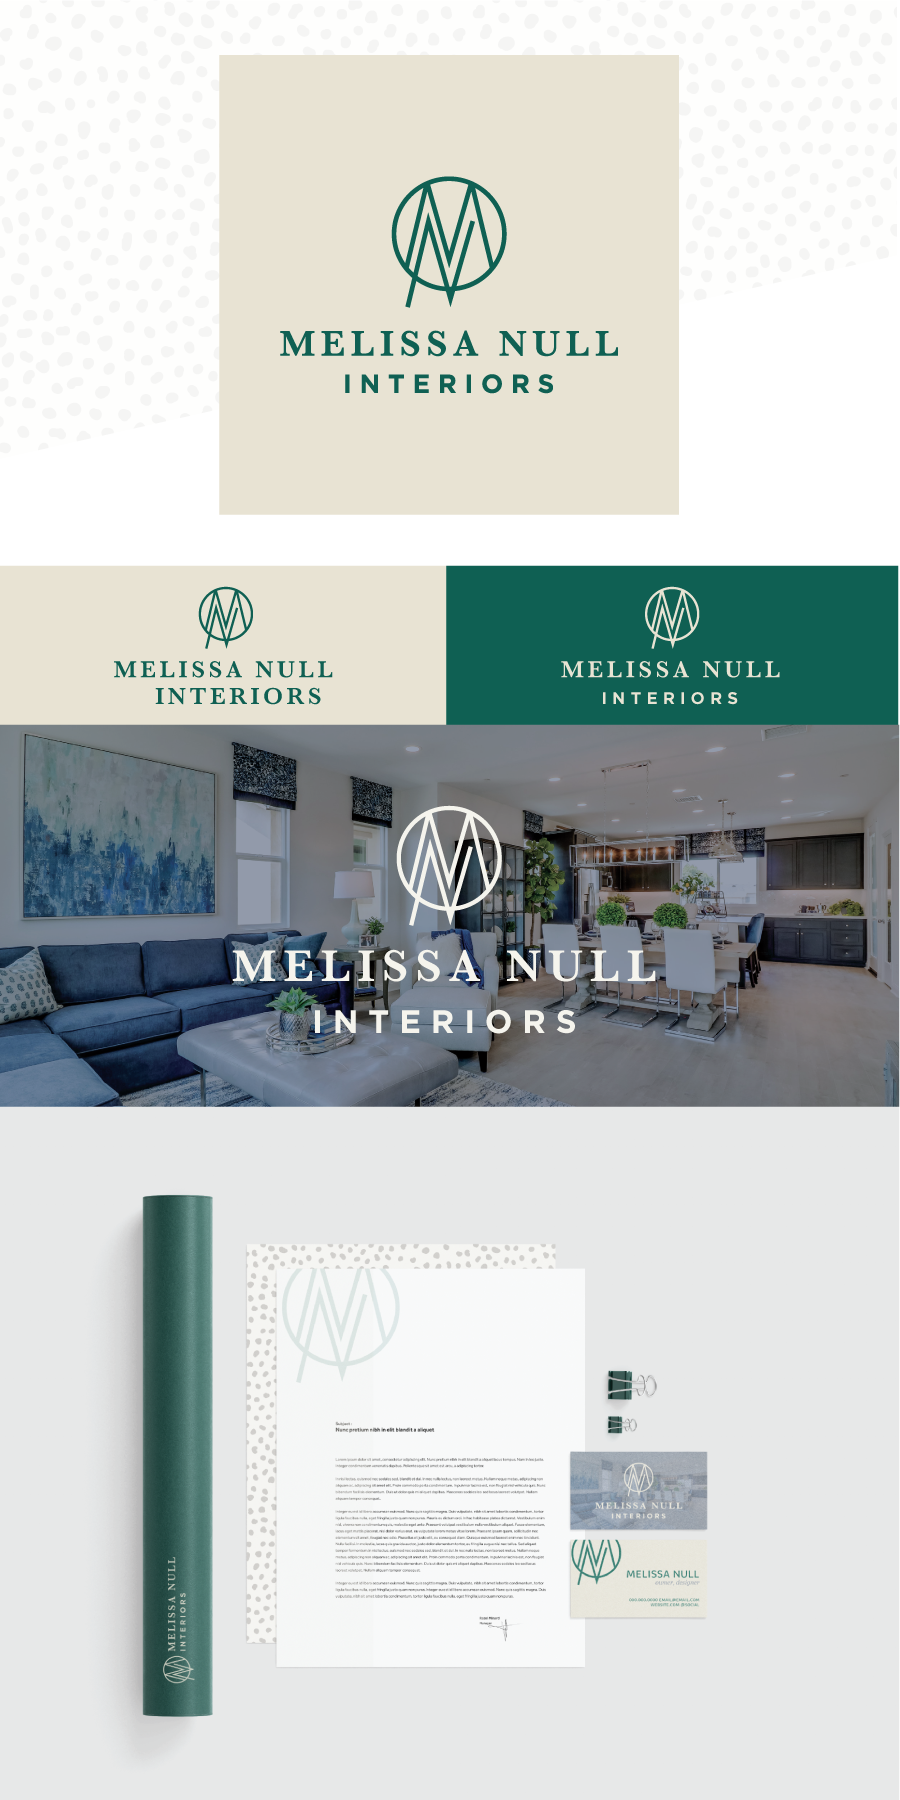 Mn Monogram Logo For Interior Design Firm Melissa Null Interiors Using Earth Tones Playful Pat Monogram Logo Design Interior Design Brand Branding Design Logo